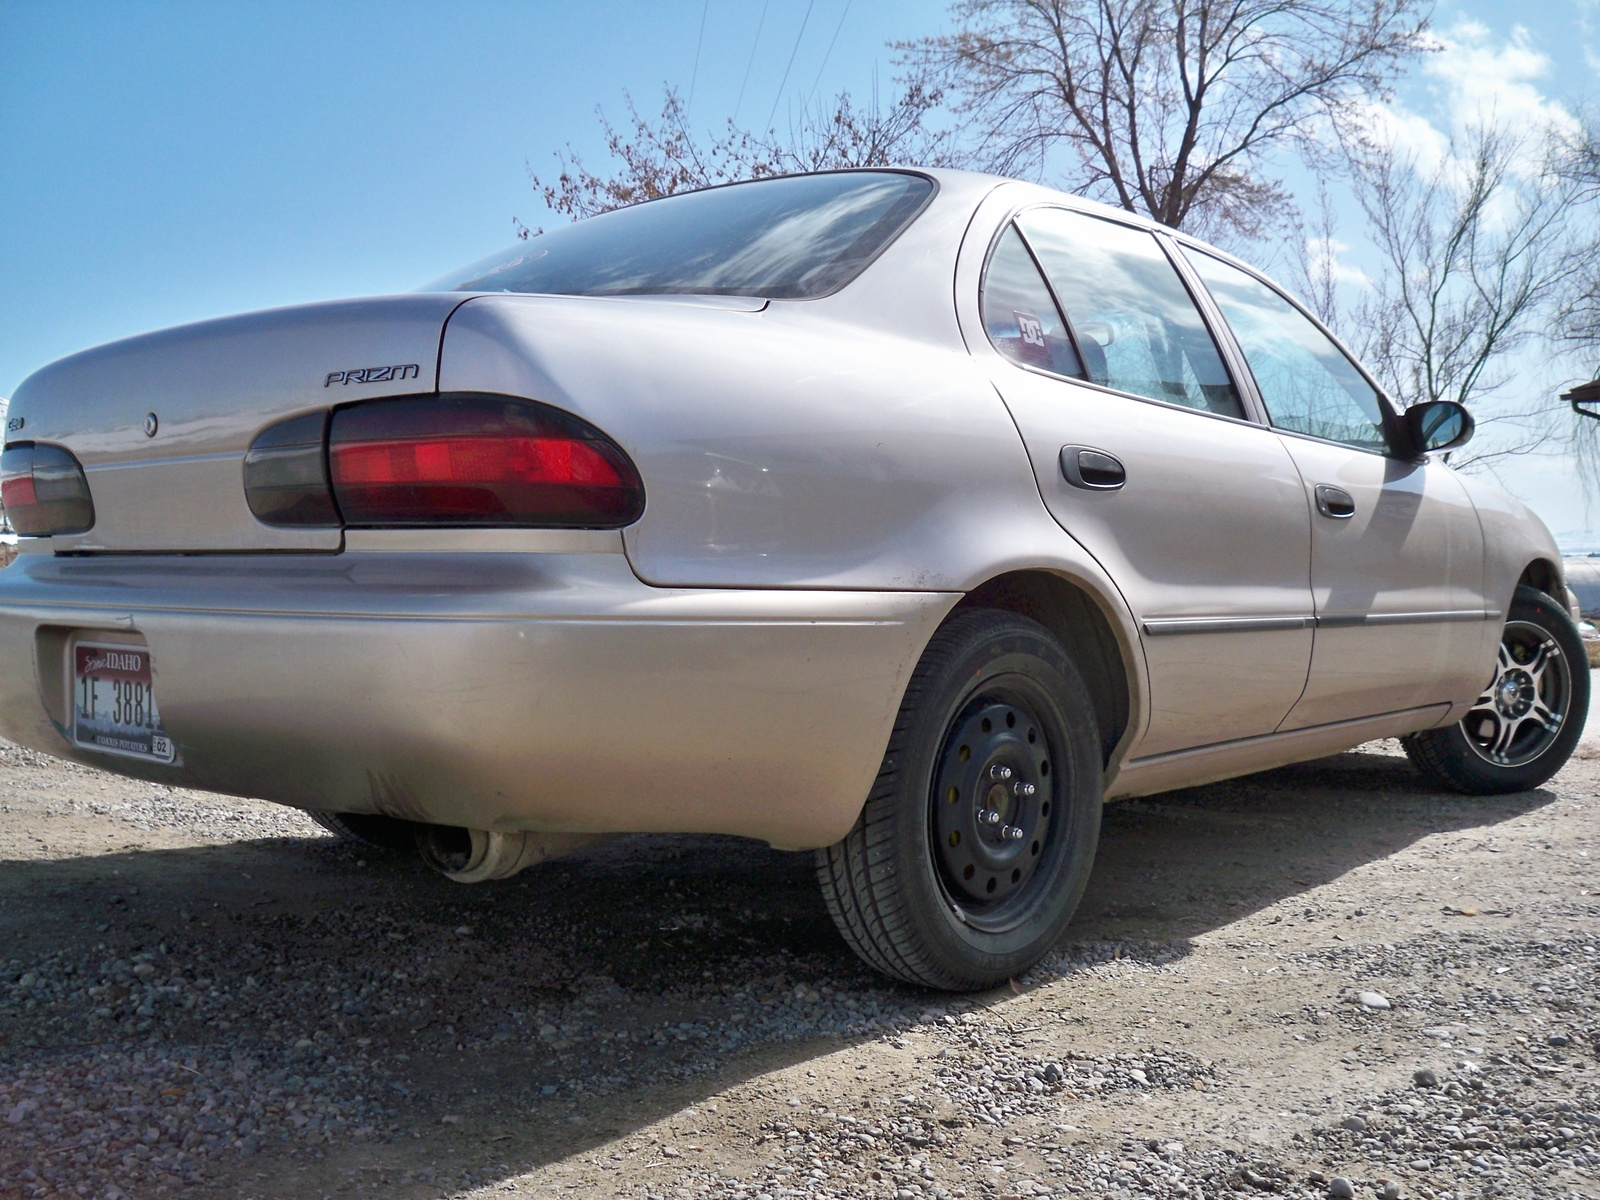 1996 Geo Prizm 4 Dr STD Sedan picture